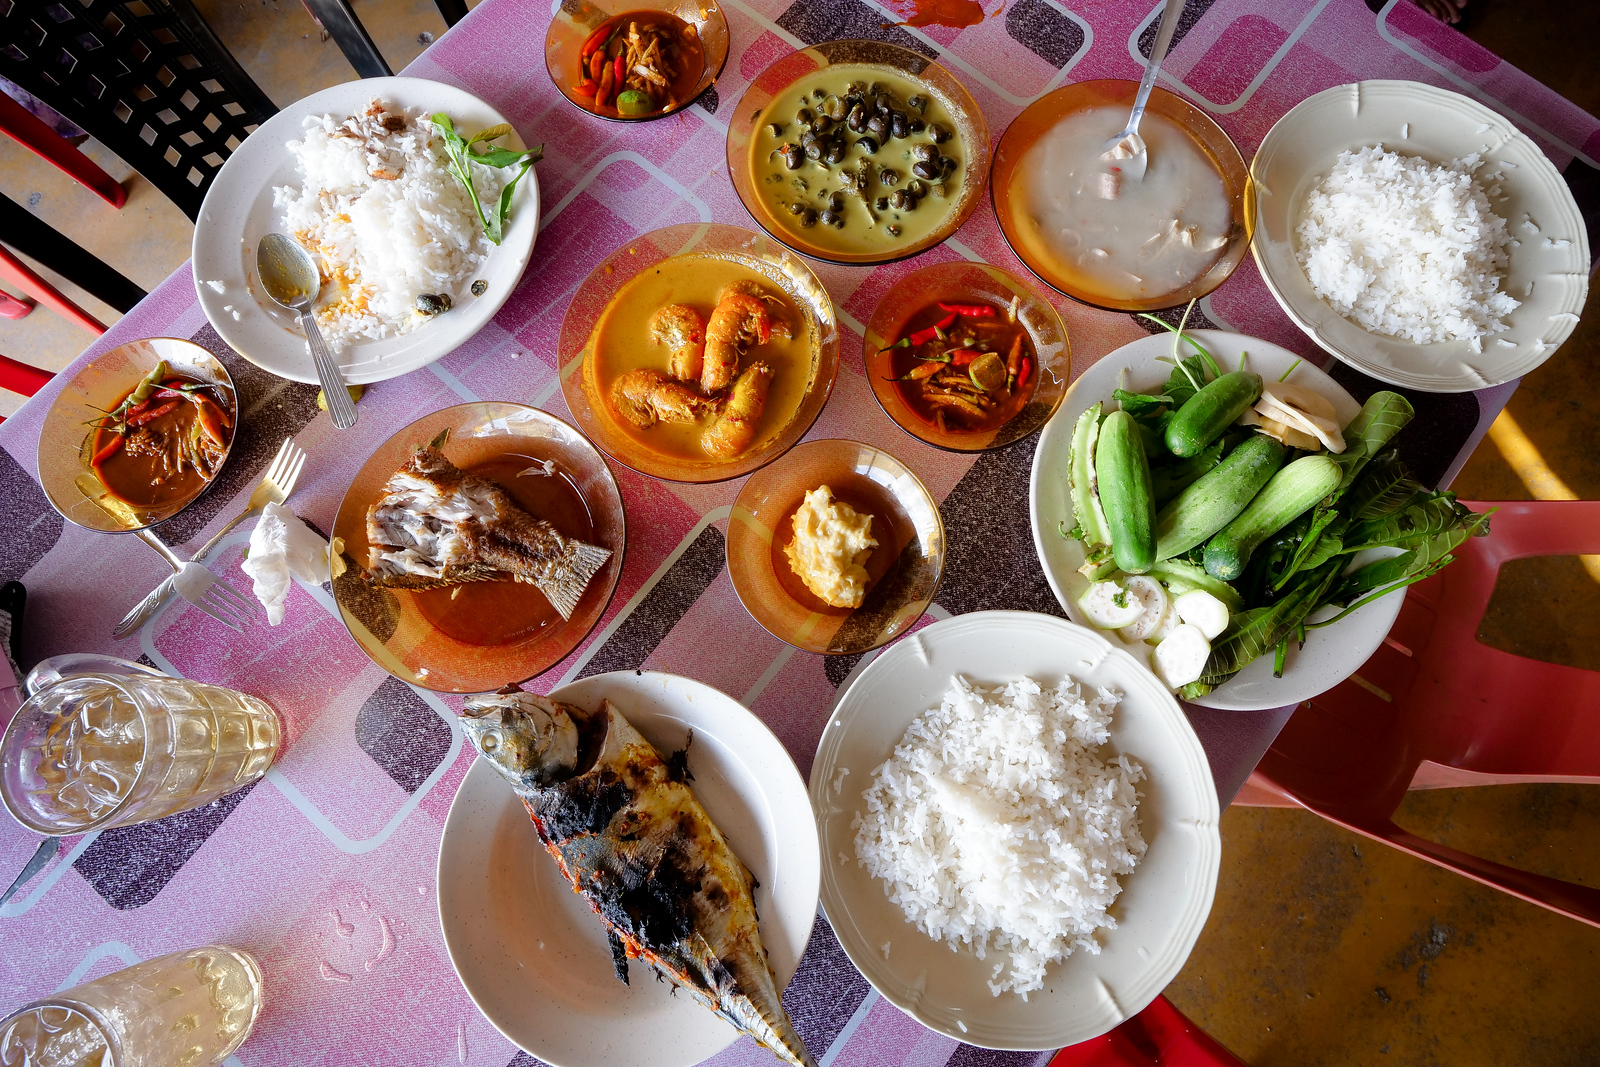 Get hungry for every meal you will eat in Kelantan! Their food is fresh, vibrant, and quite healthy as well!